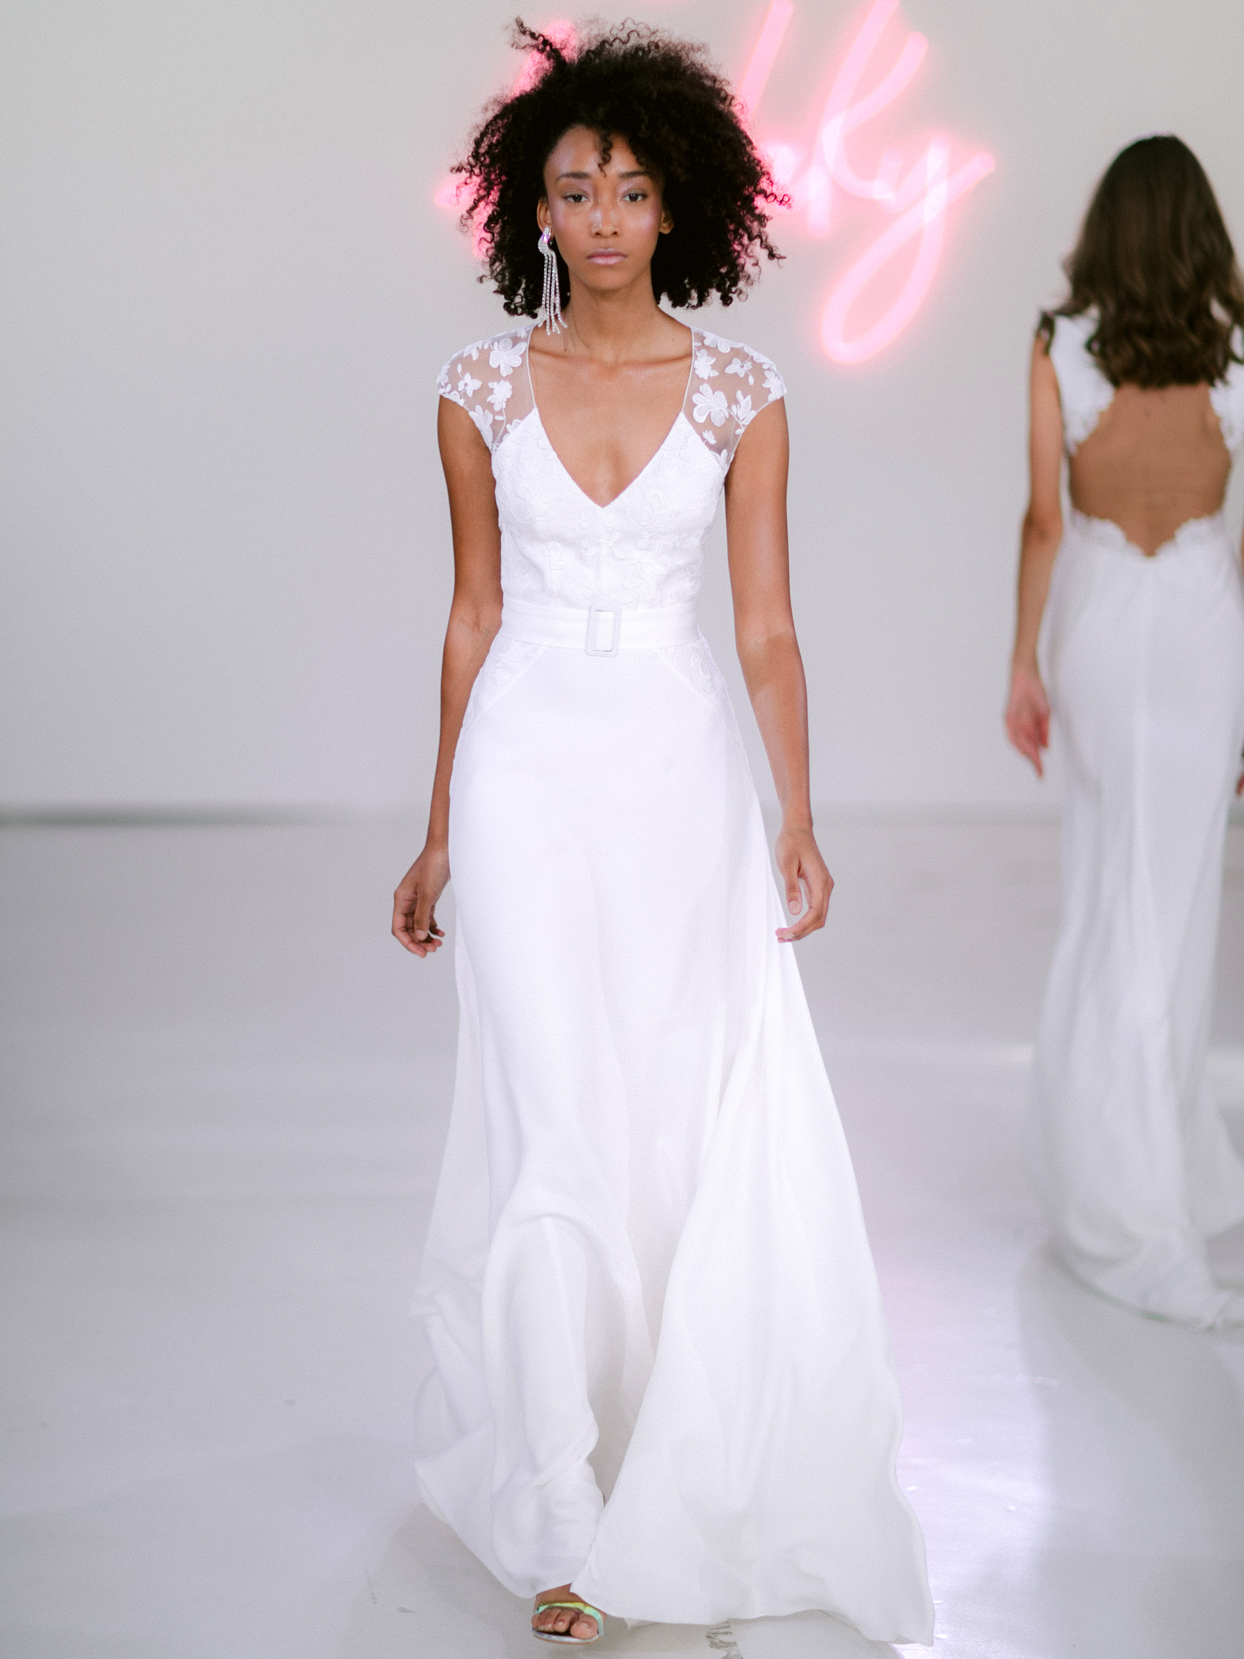 Rime Arodaky X The Mews Bridal lace cap sleeve v-neck belted wedding dress fall 2020